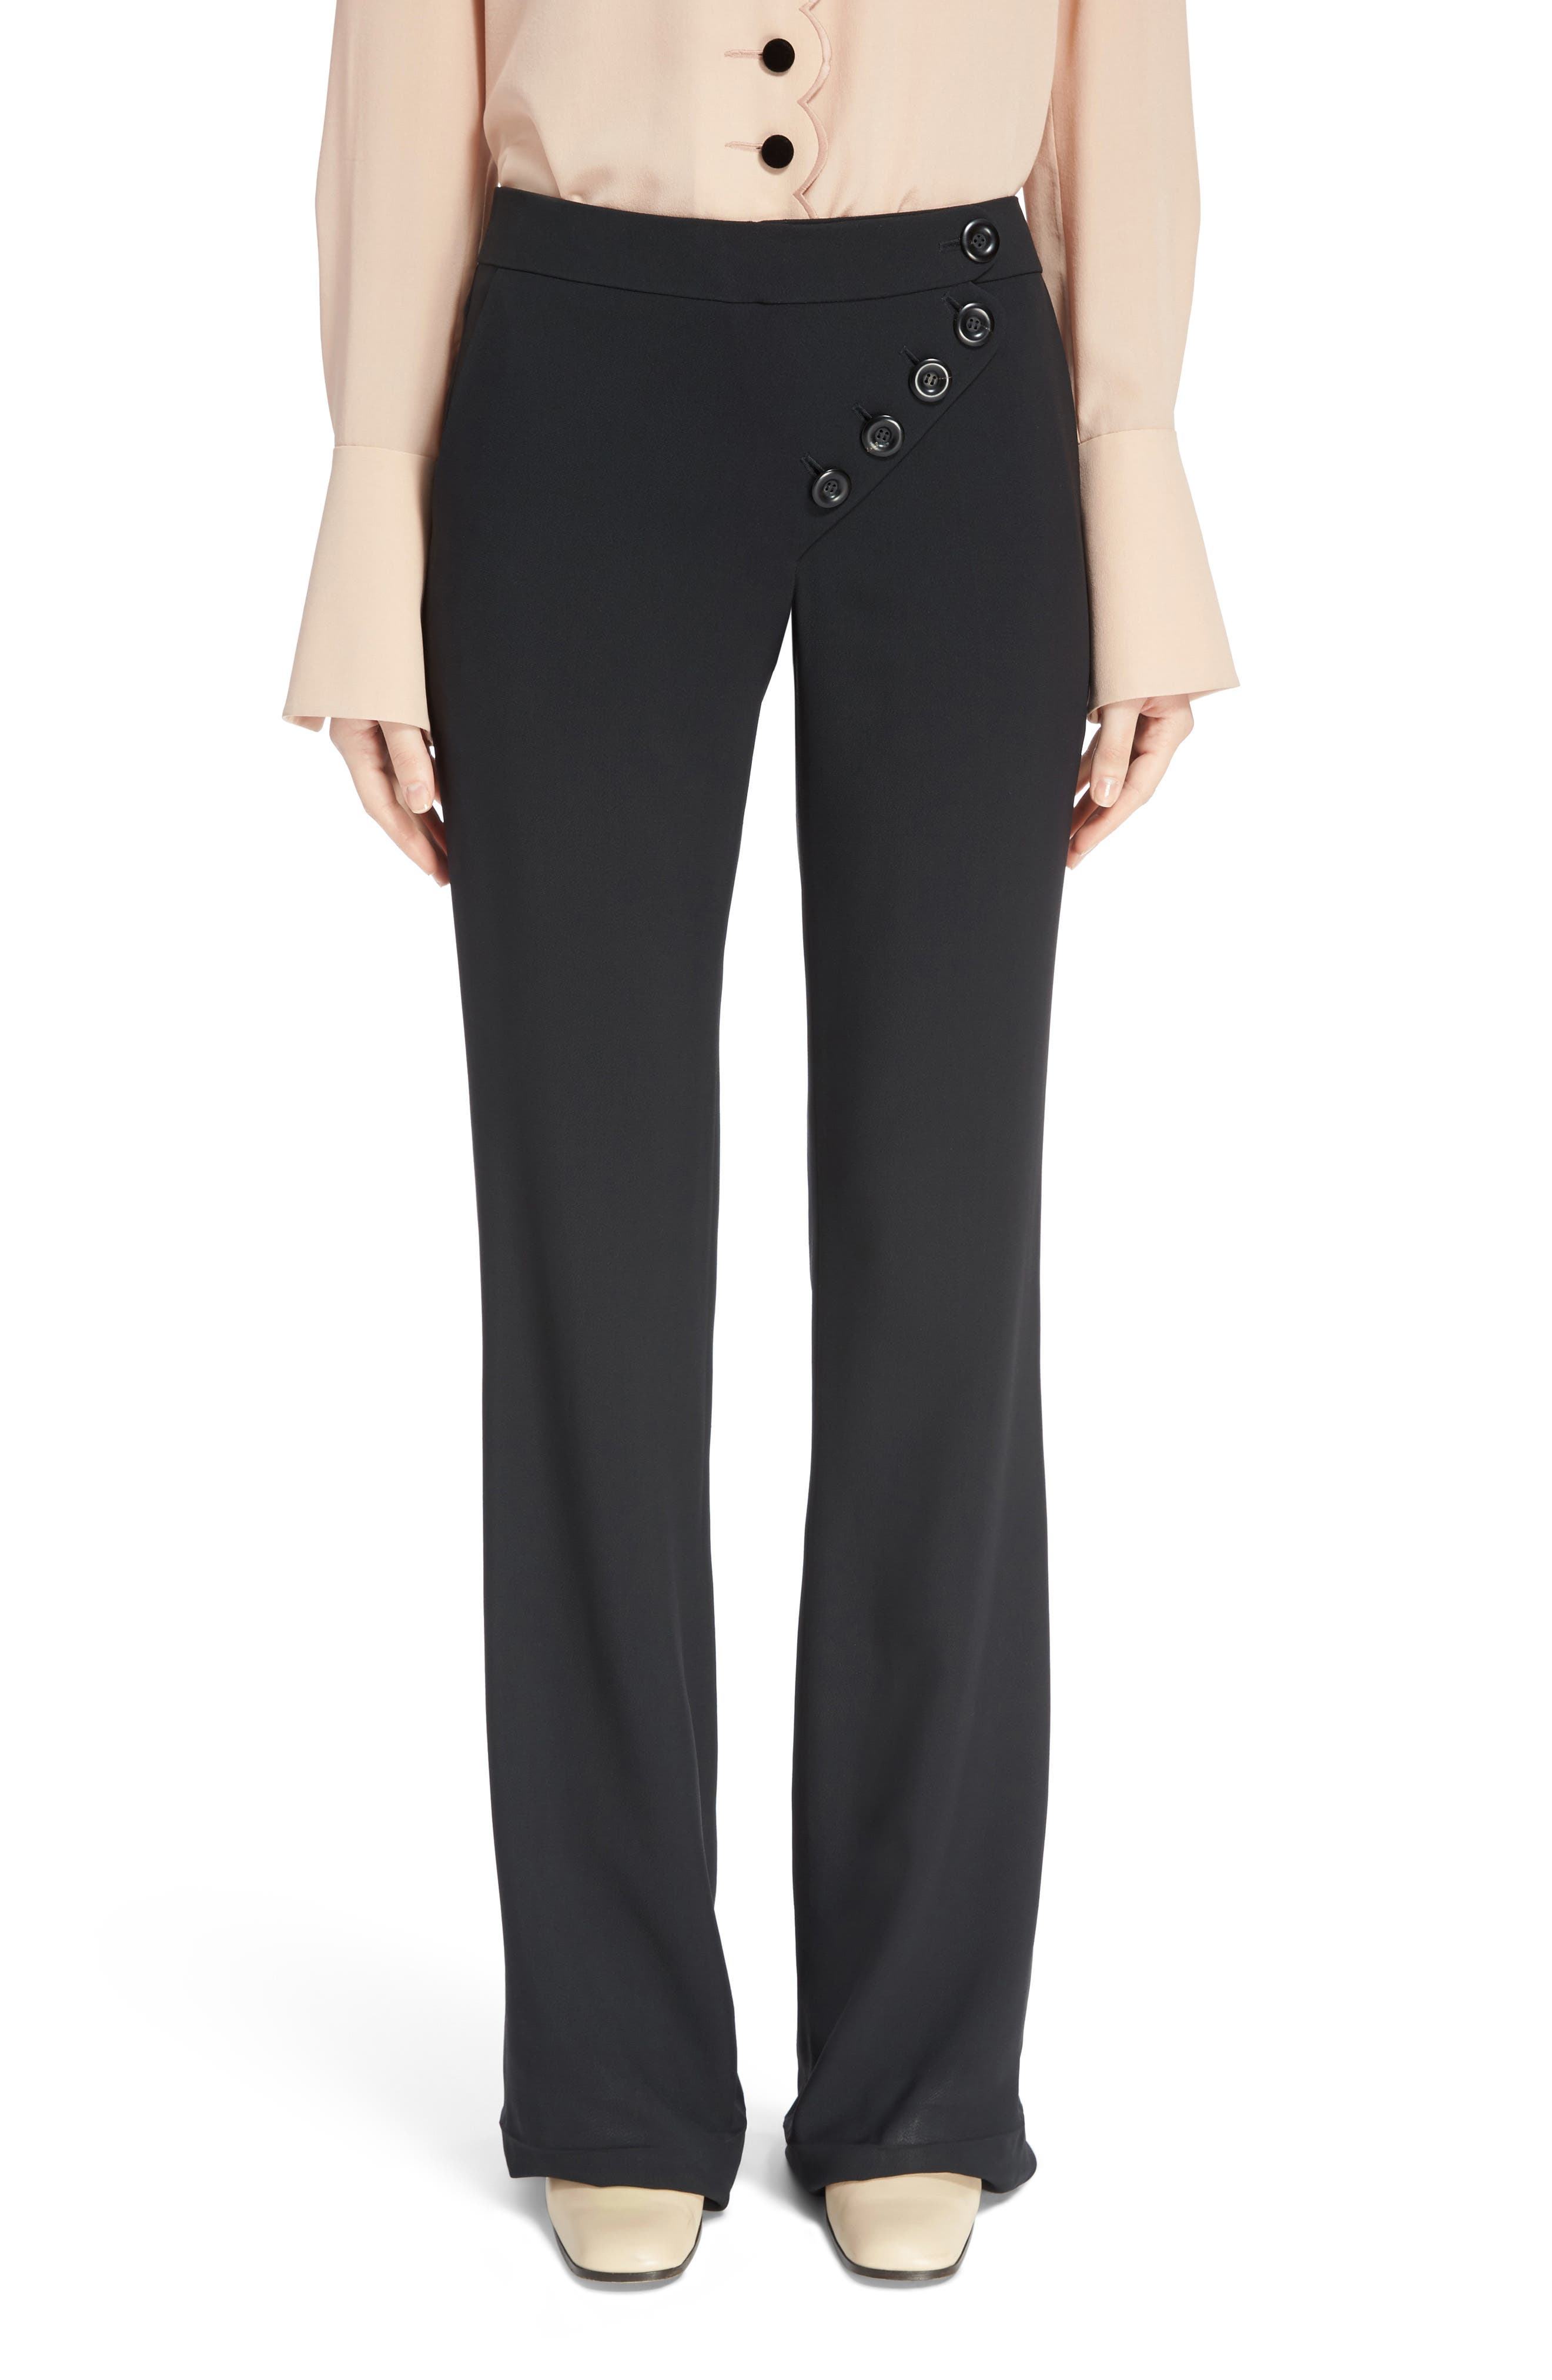 Alternate Image 1 Selected - Chloé Asymmetrical Button Flare Cady Pants